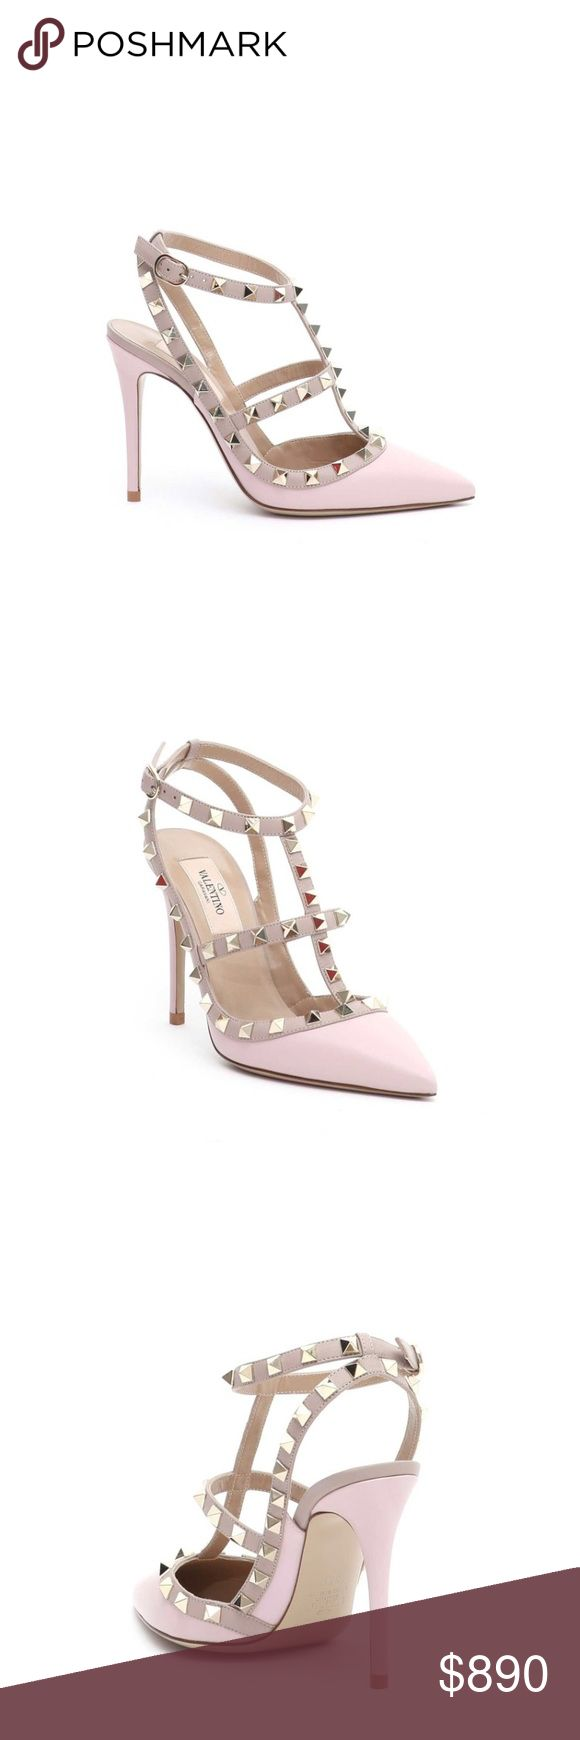 💕SALE💕 Pre-Order Valentino Pump in Rose Poudre Never worn and brand new...100% authentic or full refund... 💕ACCEPTING REASONABLE OFFER💕❌🚫TRADES❌⭕️ Valentino Shoes Heels